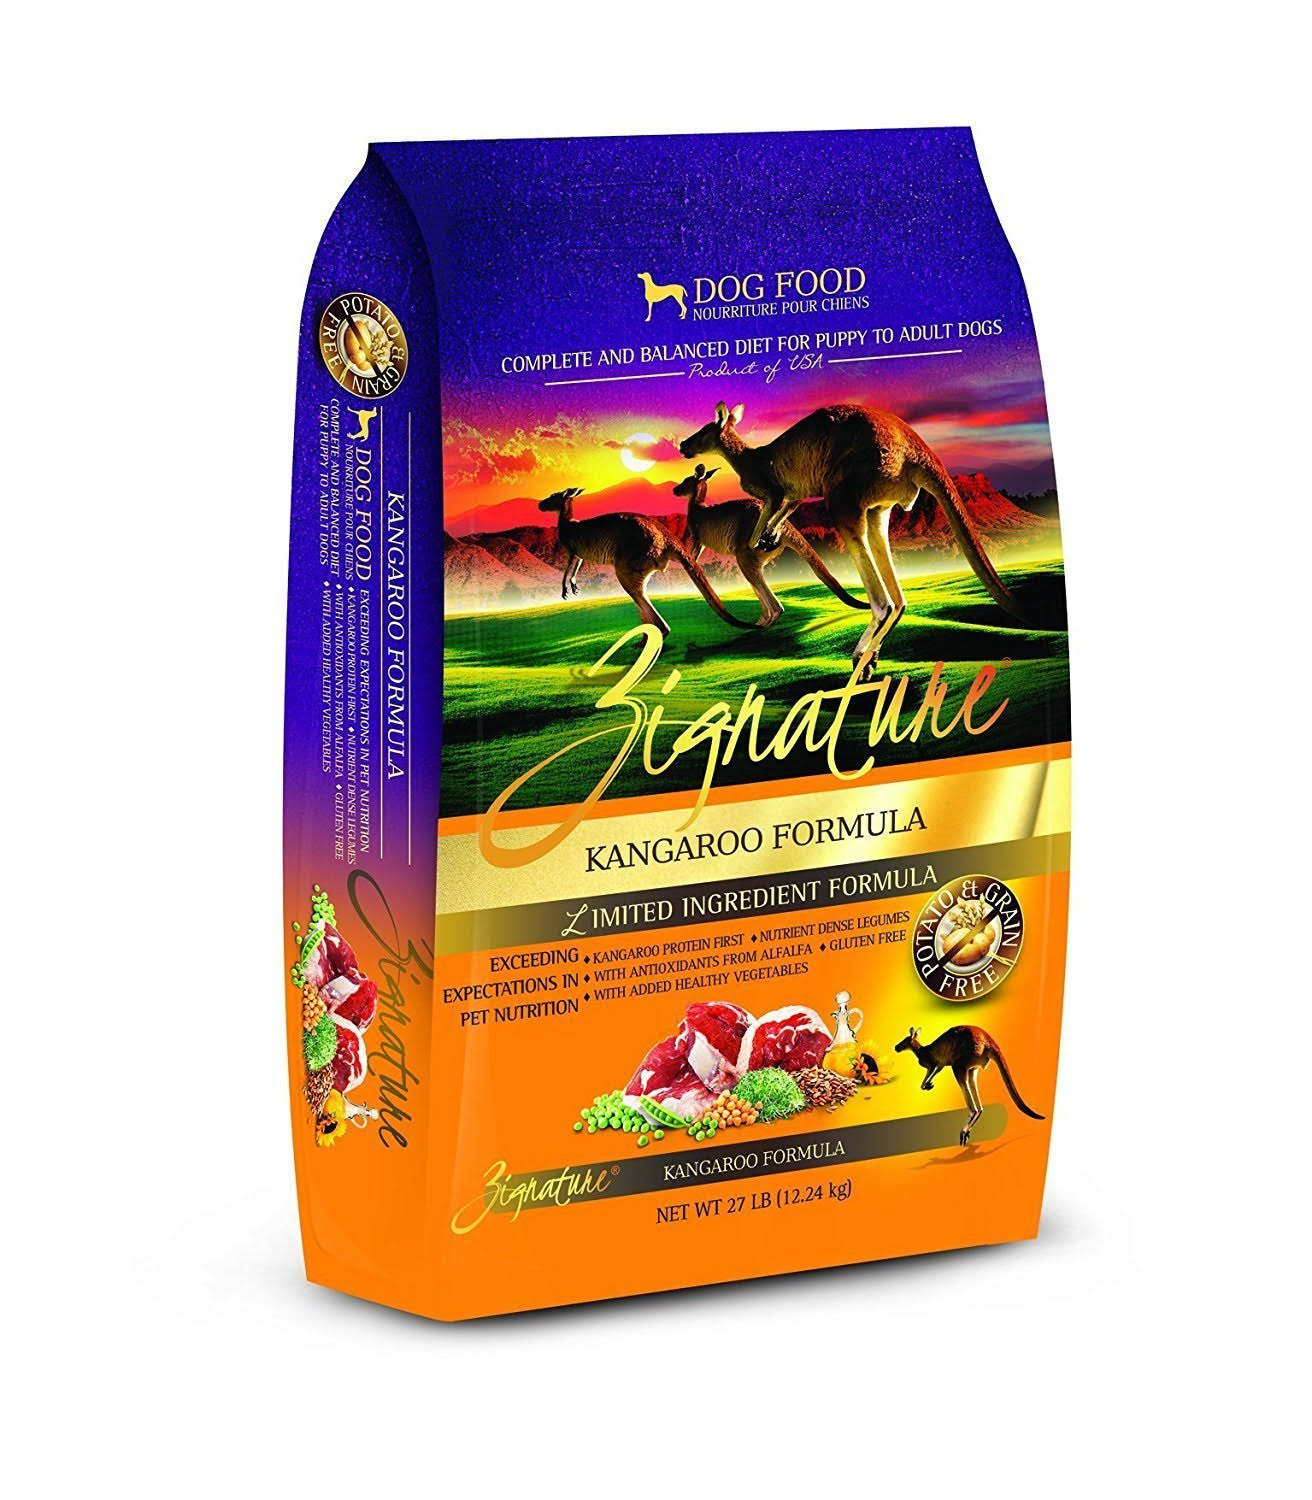 Zignature Kangaroo Formula Dry Dog Food 27 lbs